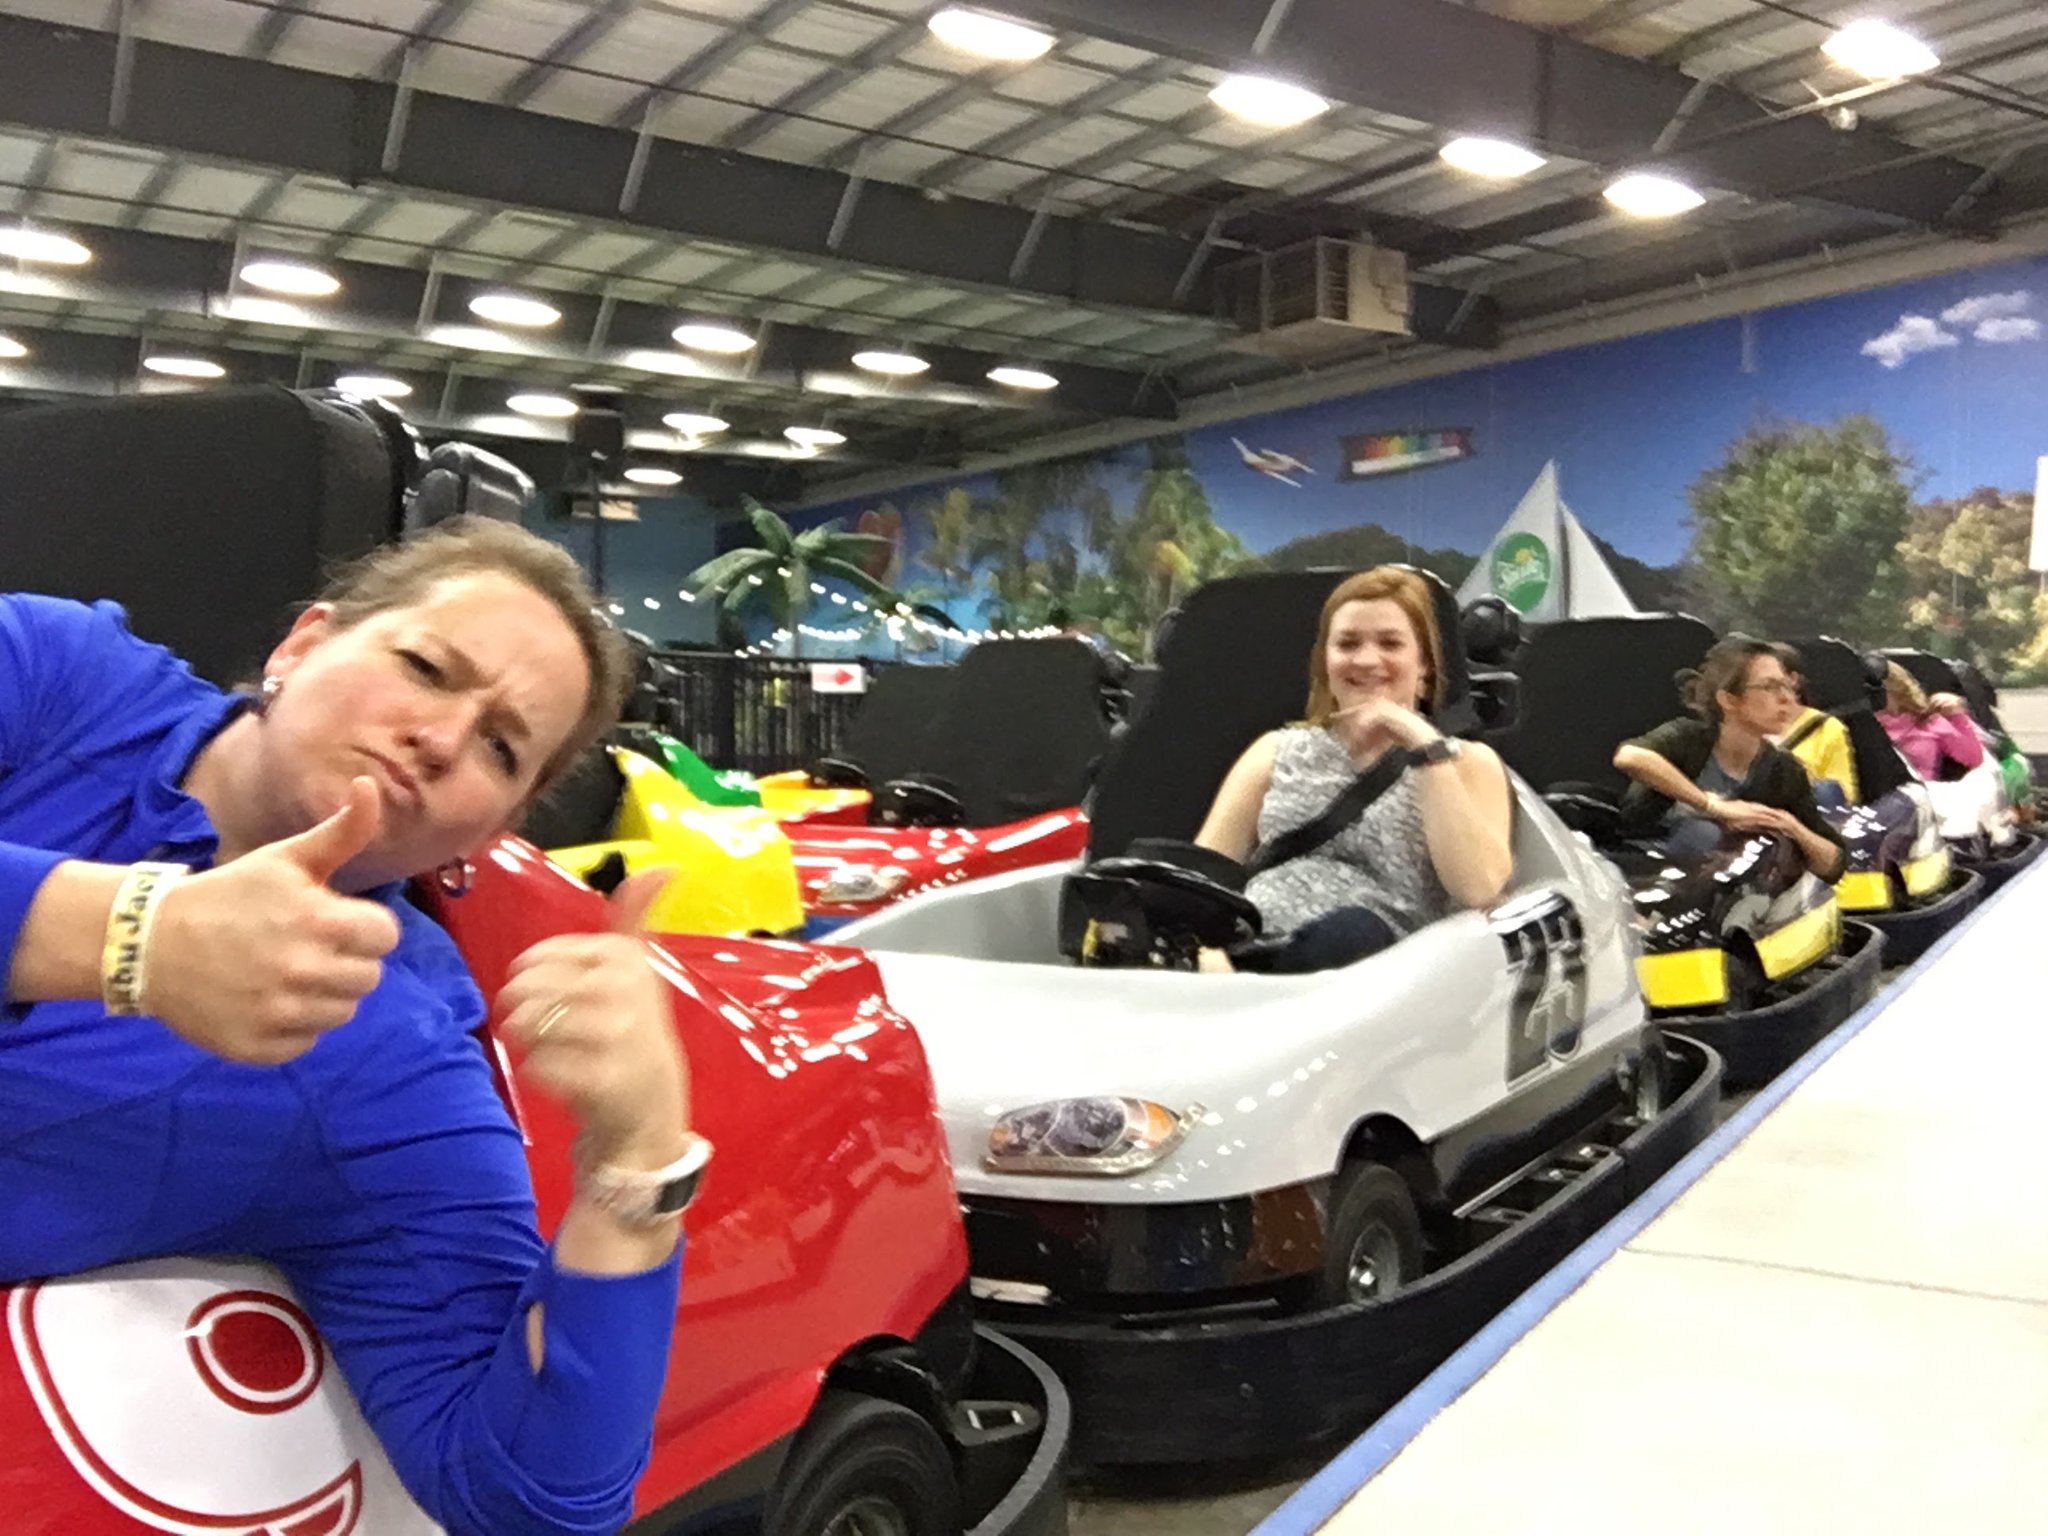 James from @EminenceSchools Our last school-wide PD (go-carting included) #kylchat https://t.co/moNS13cazH